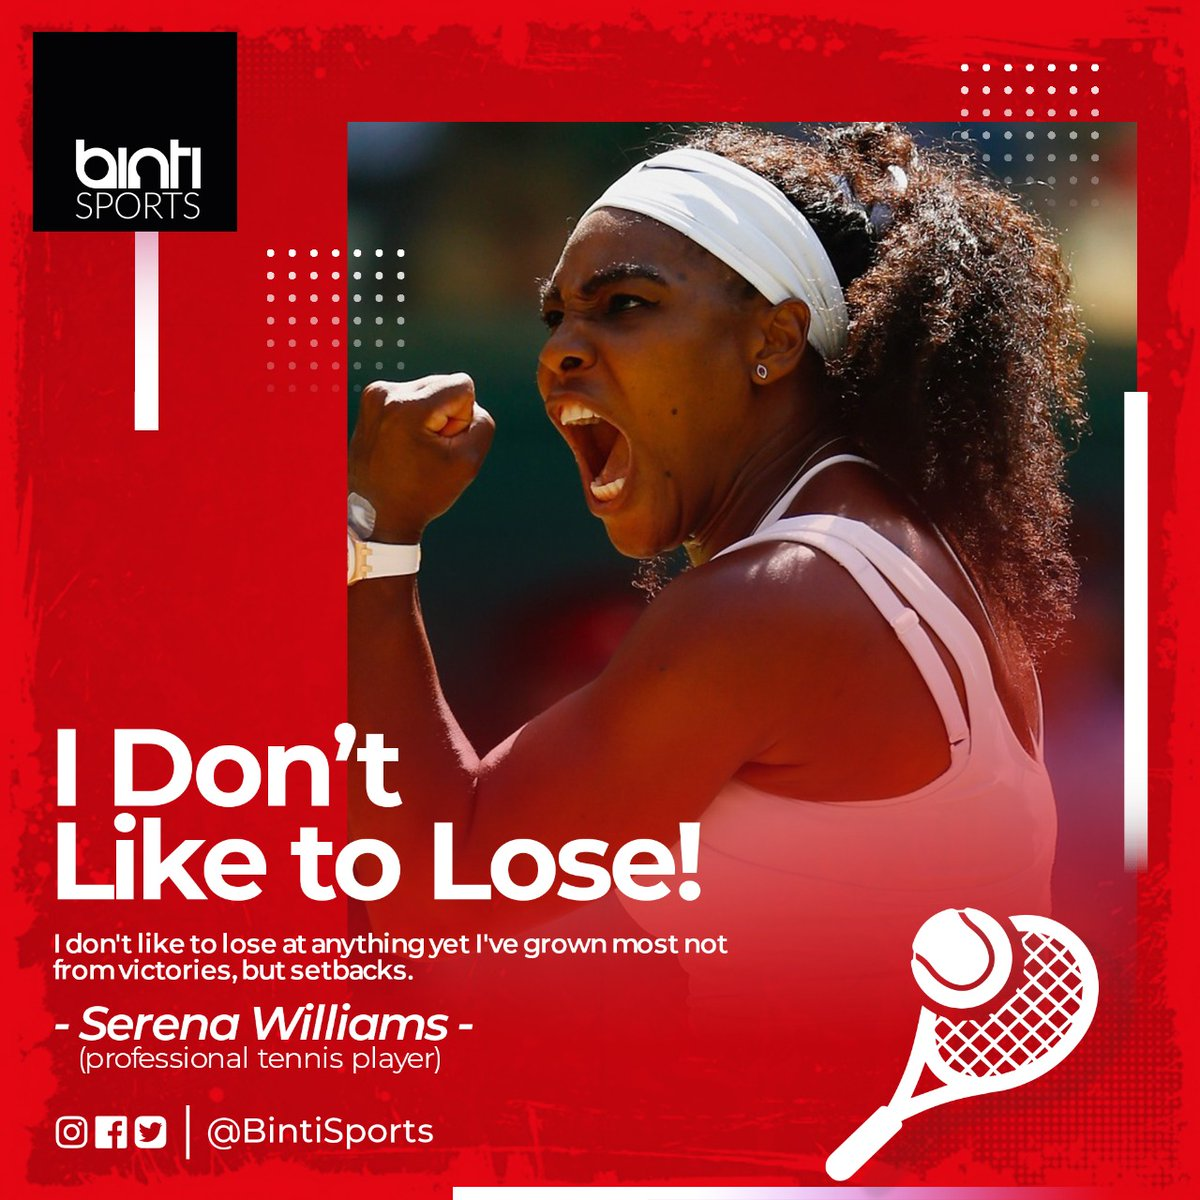 Rise above it all.Have a lovely week @serenawilliam #MondayMotivation #mondaythoughts #BeingSerena